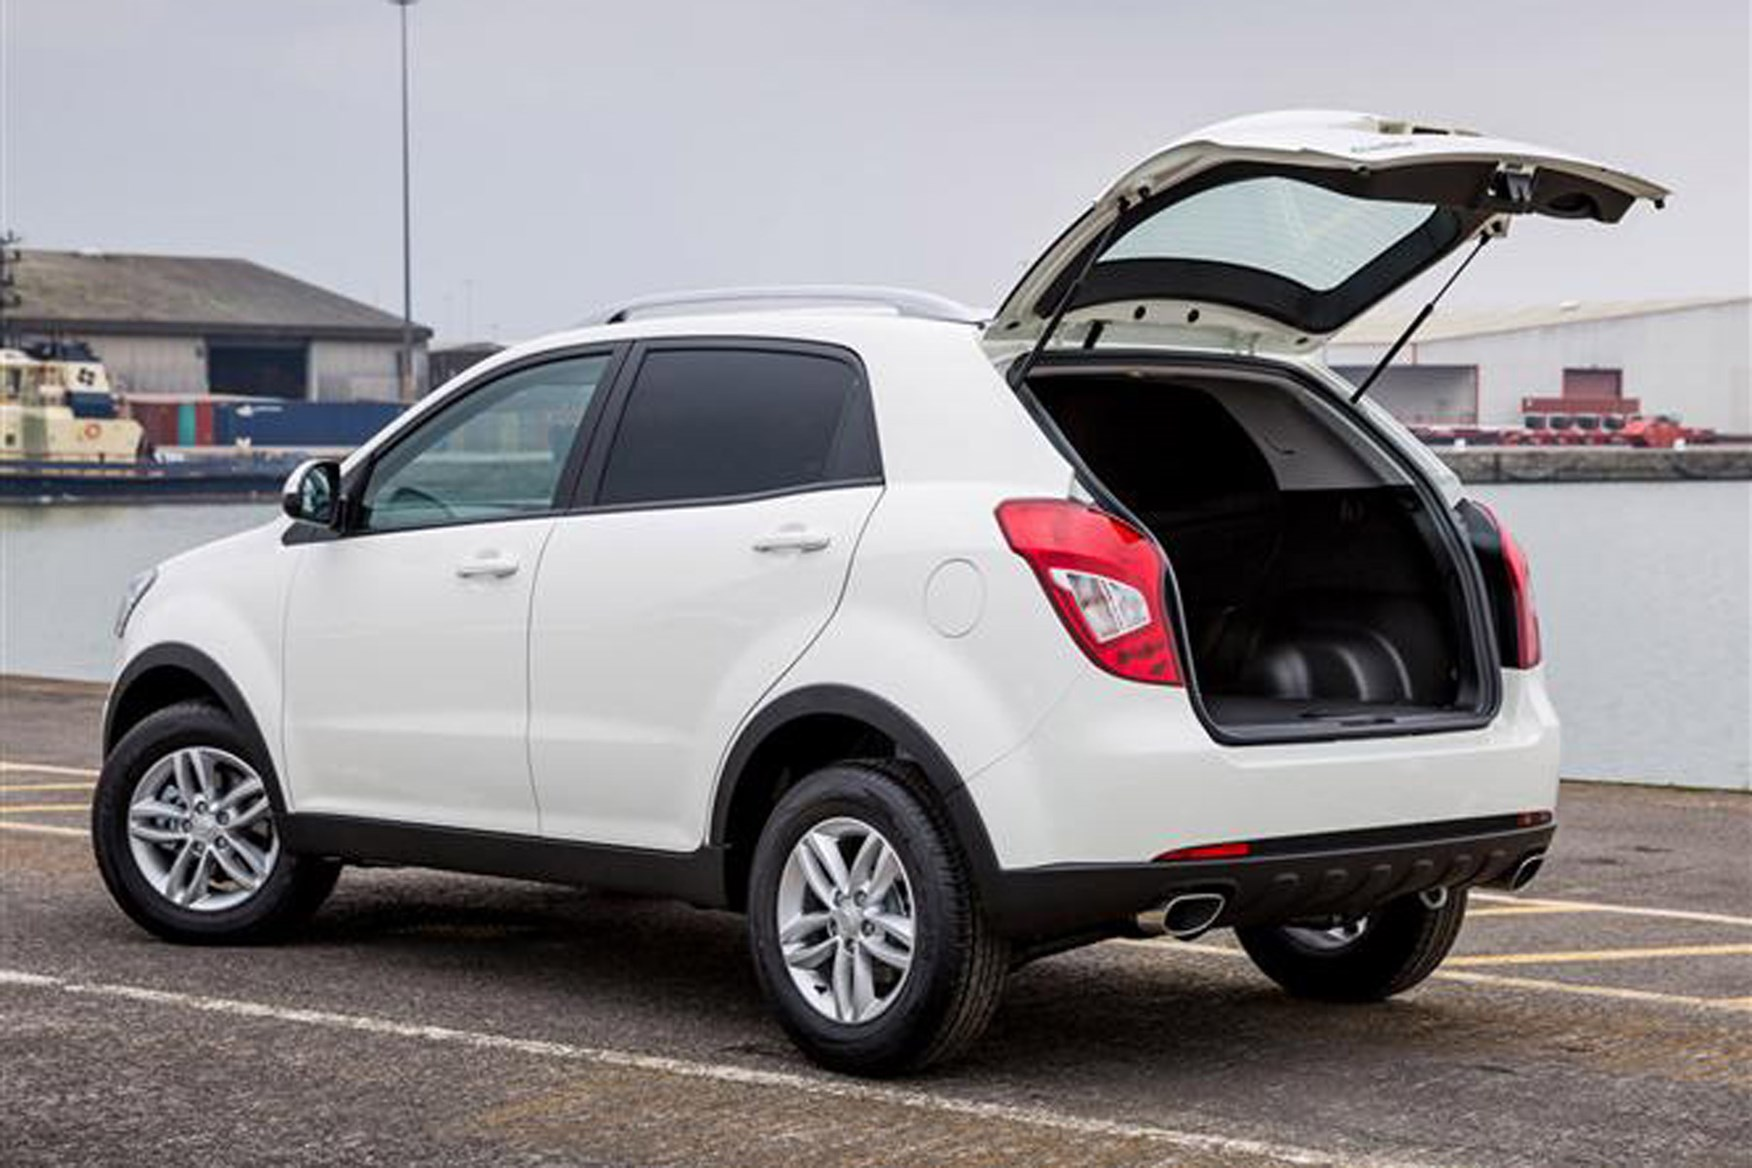 SsangYong Korando review on Parkers Vans - load area access